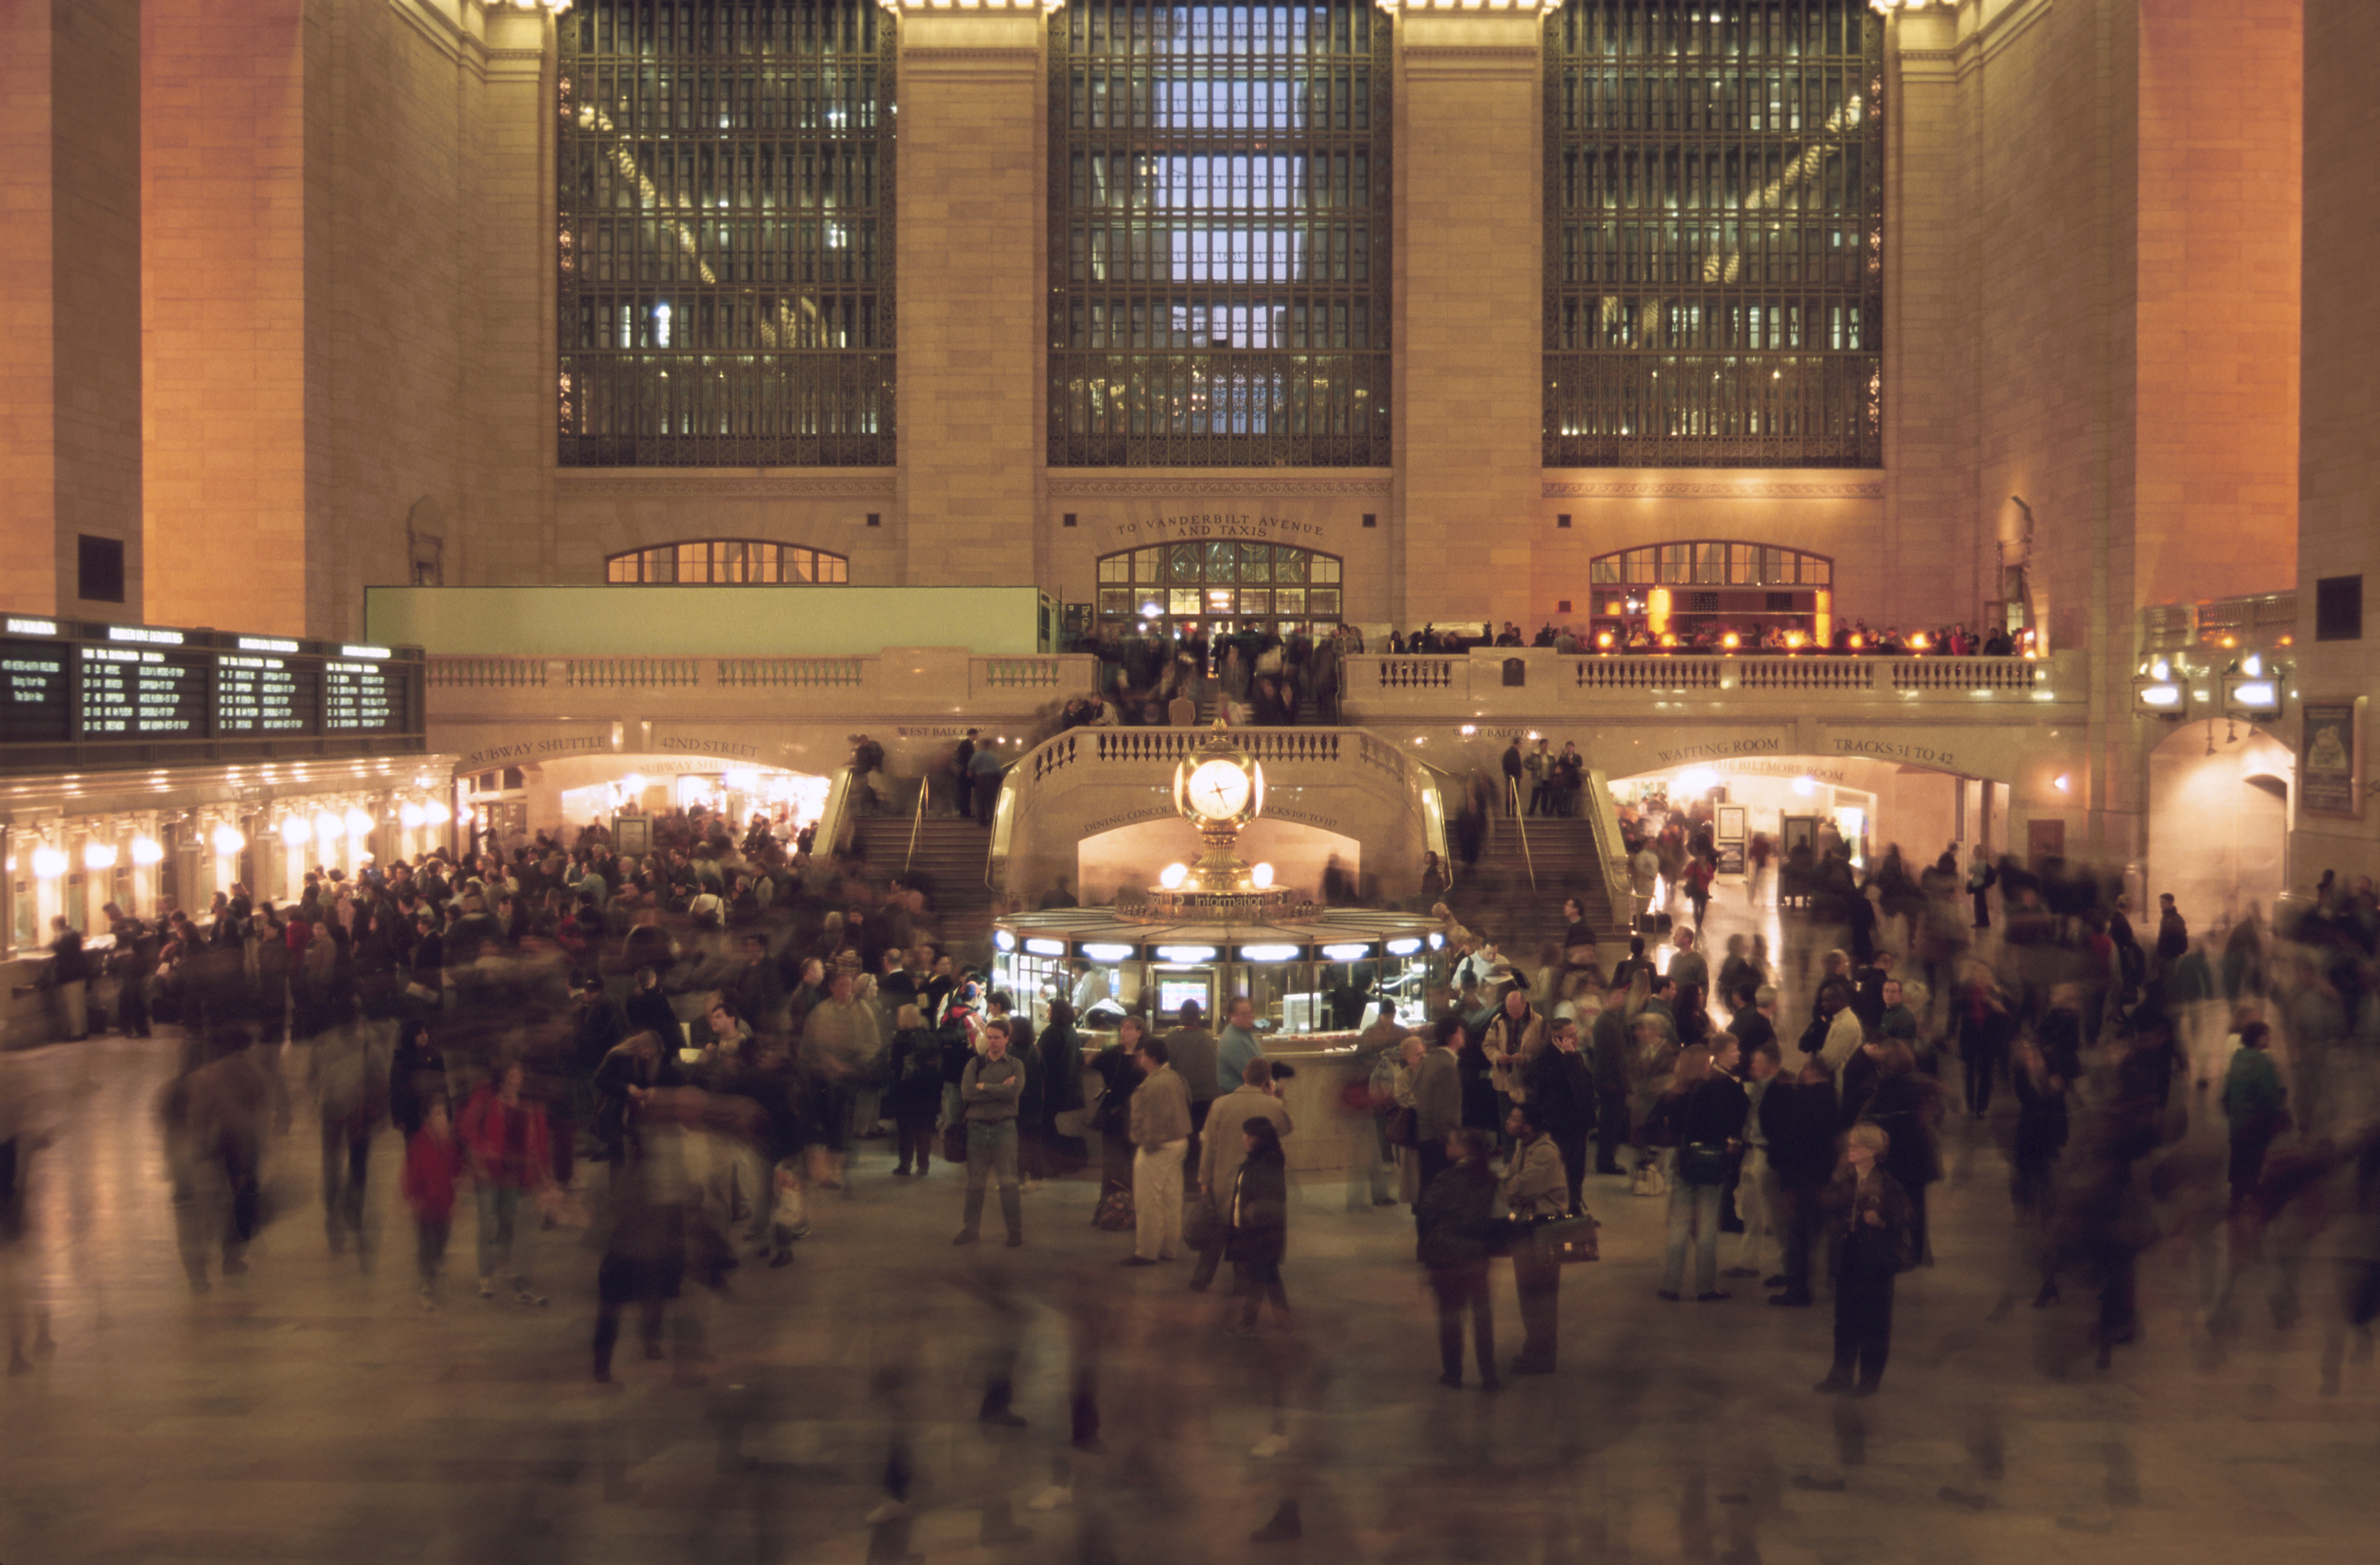 a station crowded with people